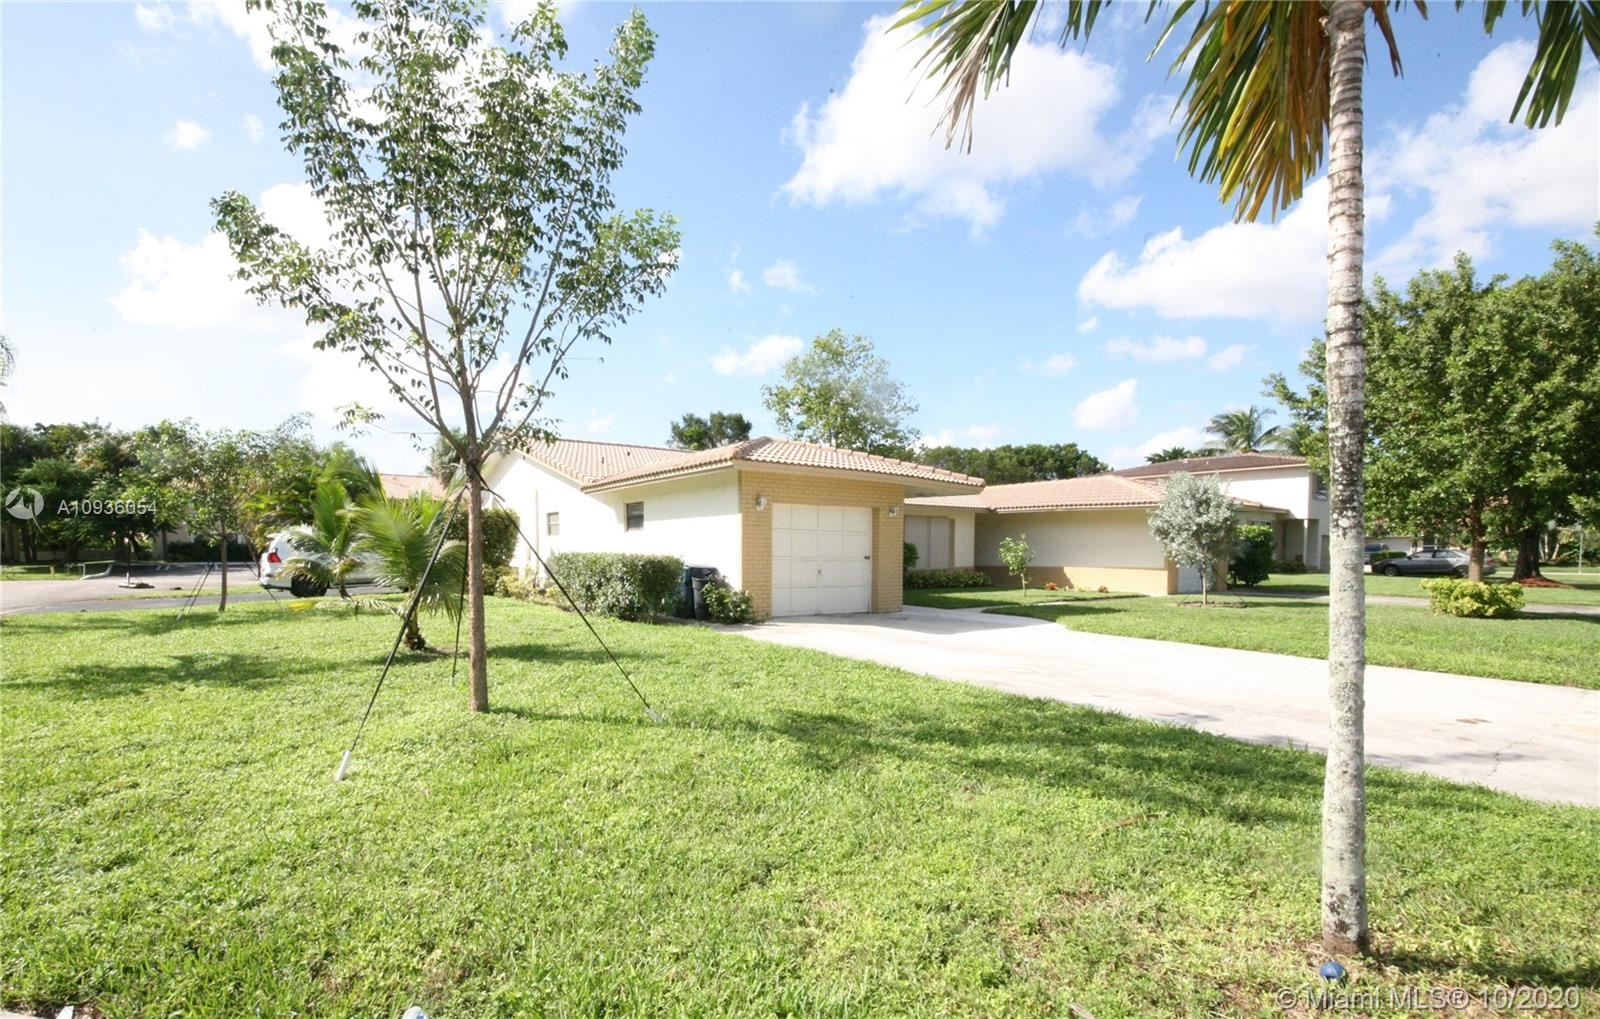 11609 NW 24th Ct, Coral Springs, FL 33065 - #: A10936054